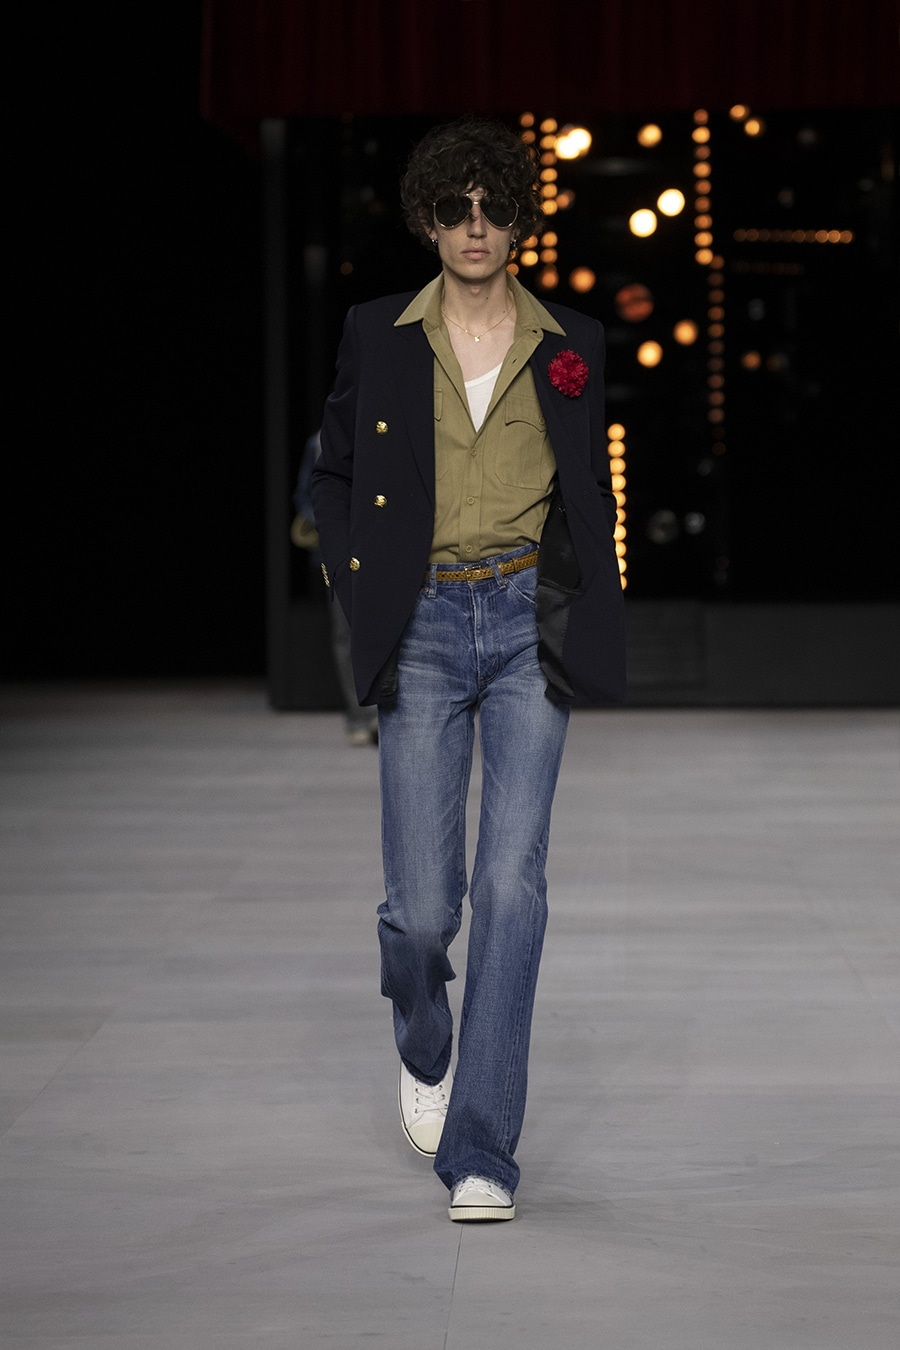 Male model on 70's inspired Celine runway